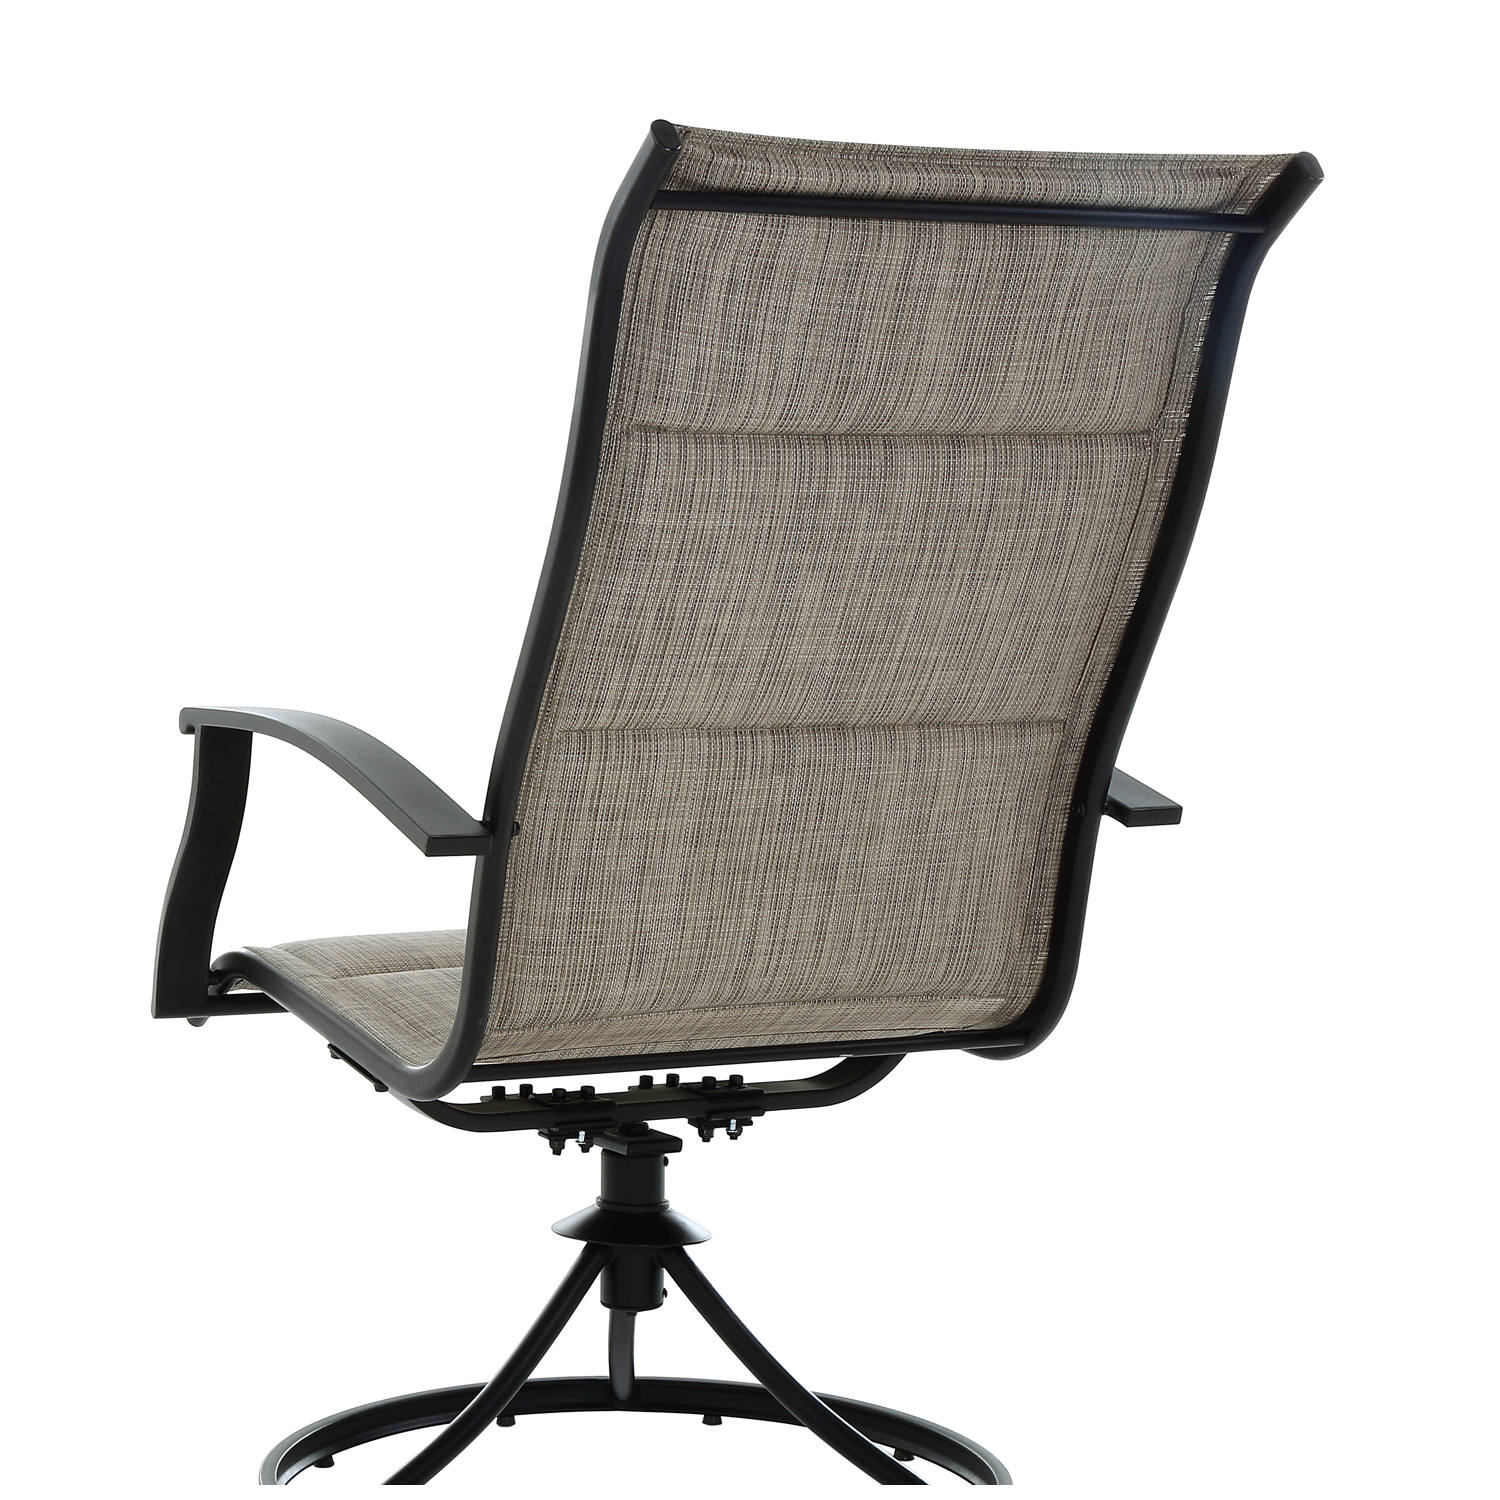 Mainstays Highland Knolls 4pc Outdoor Dining Sling Chair   Tan, BOX 1 OF 2    Walmart.com